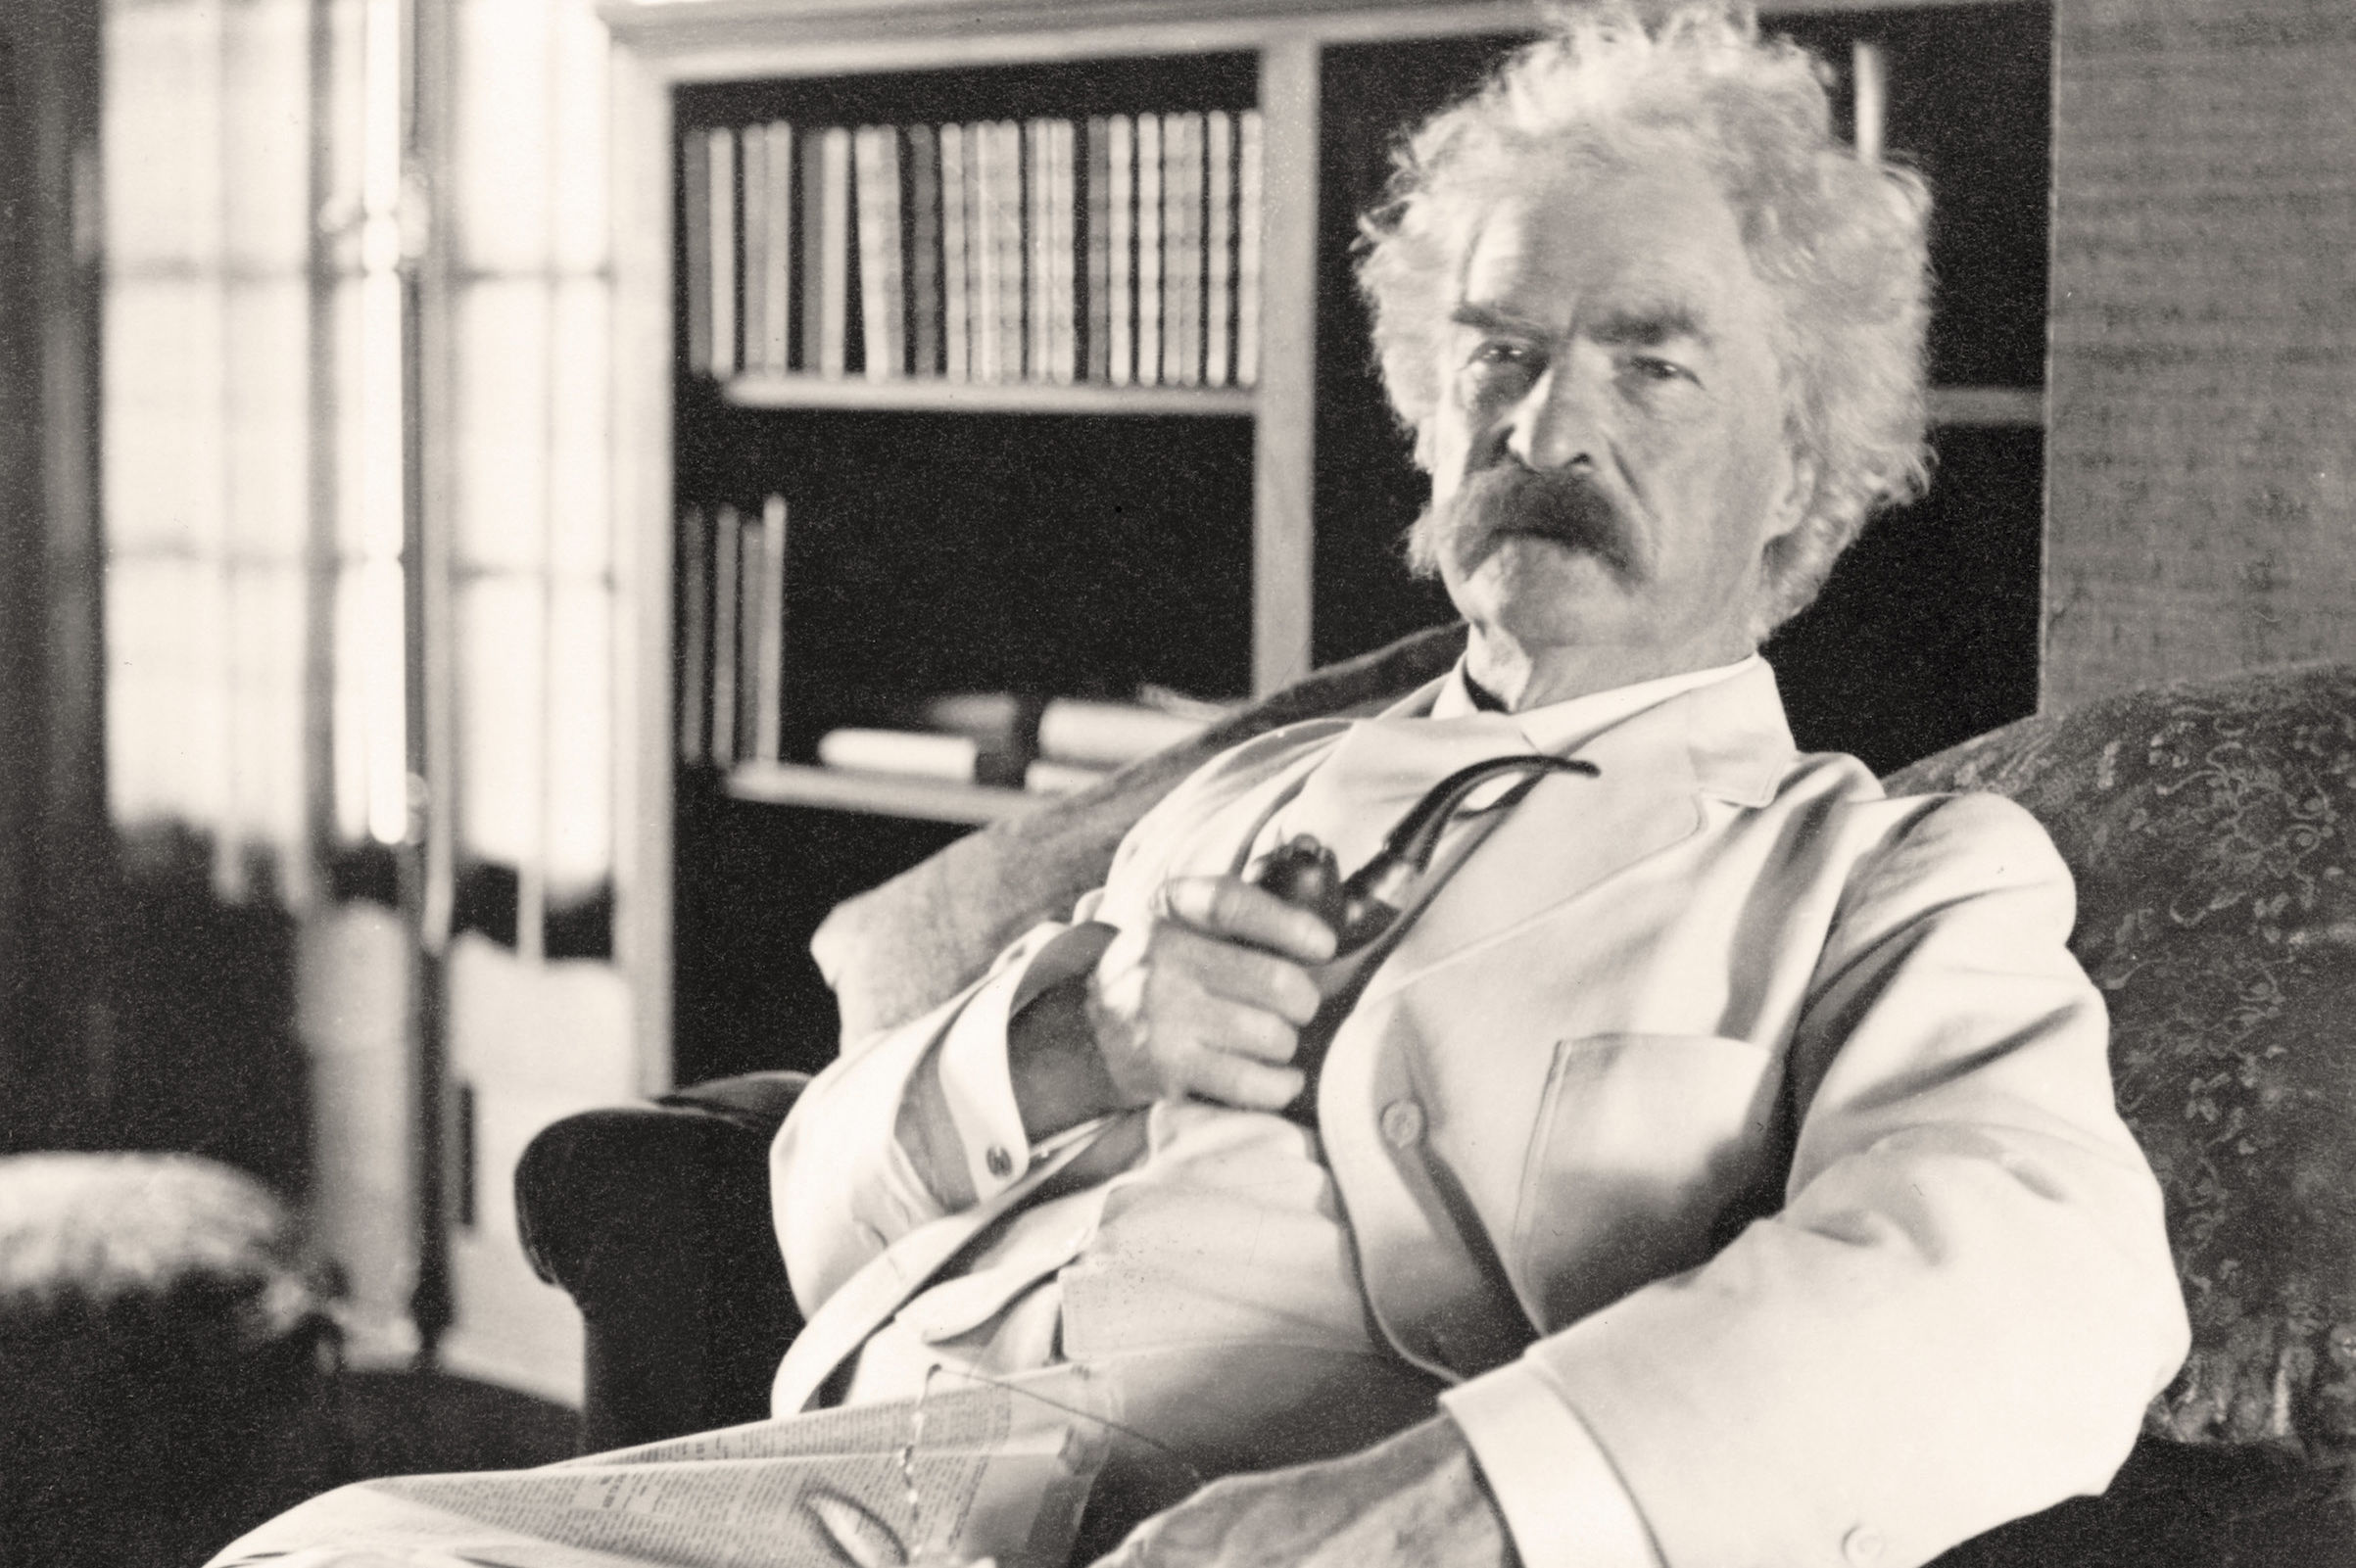 Mark Twain Claimed He Got His Pen Name From a Riverboat Captain. He May Have Actually Gotten It in a Saloon